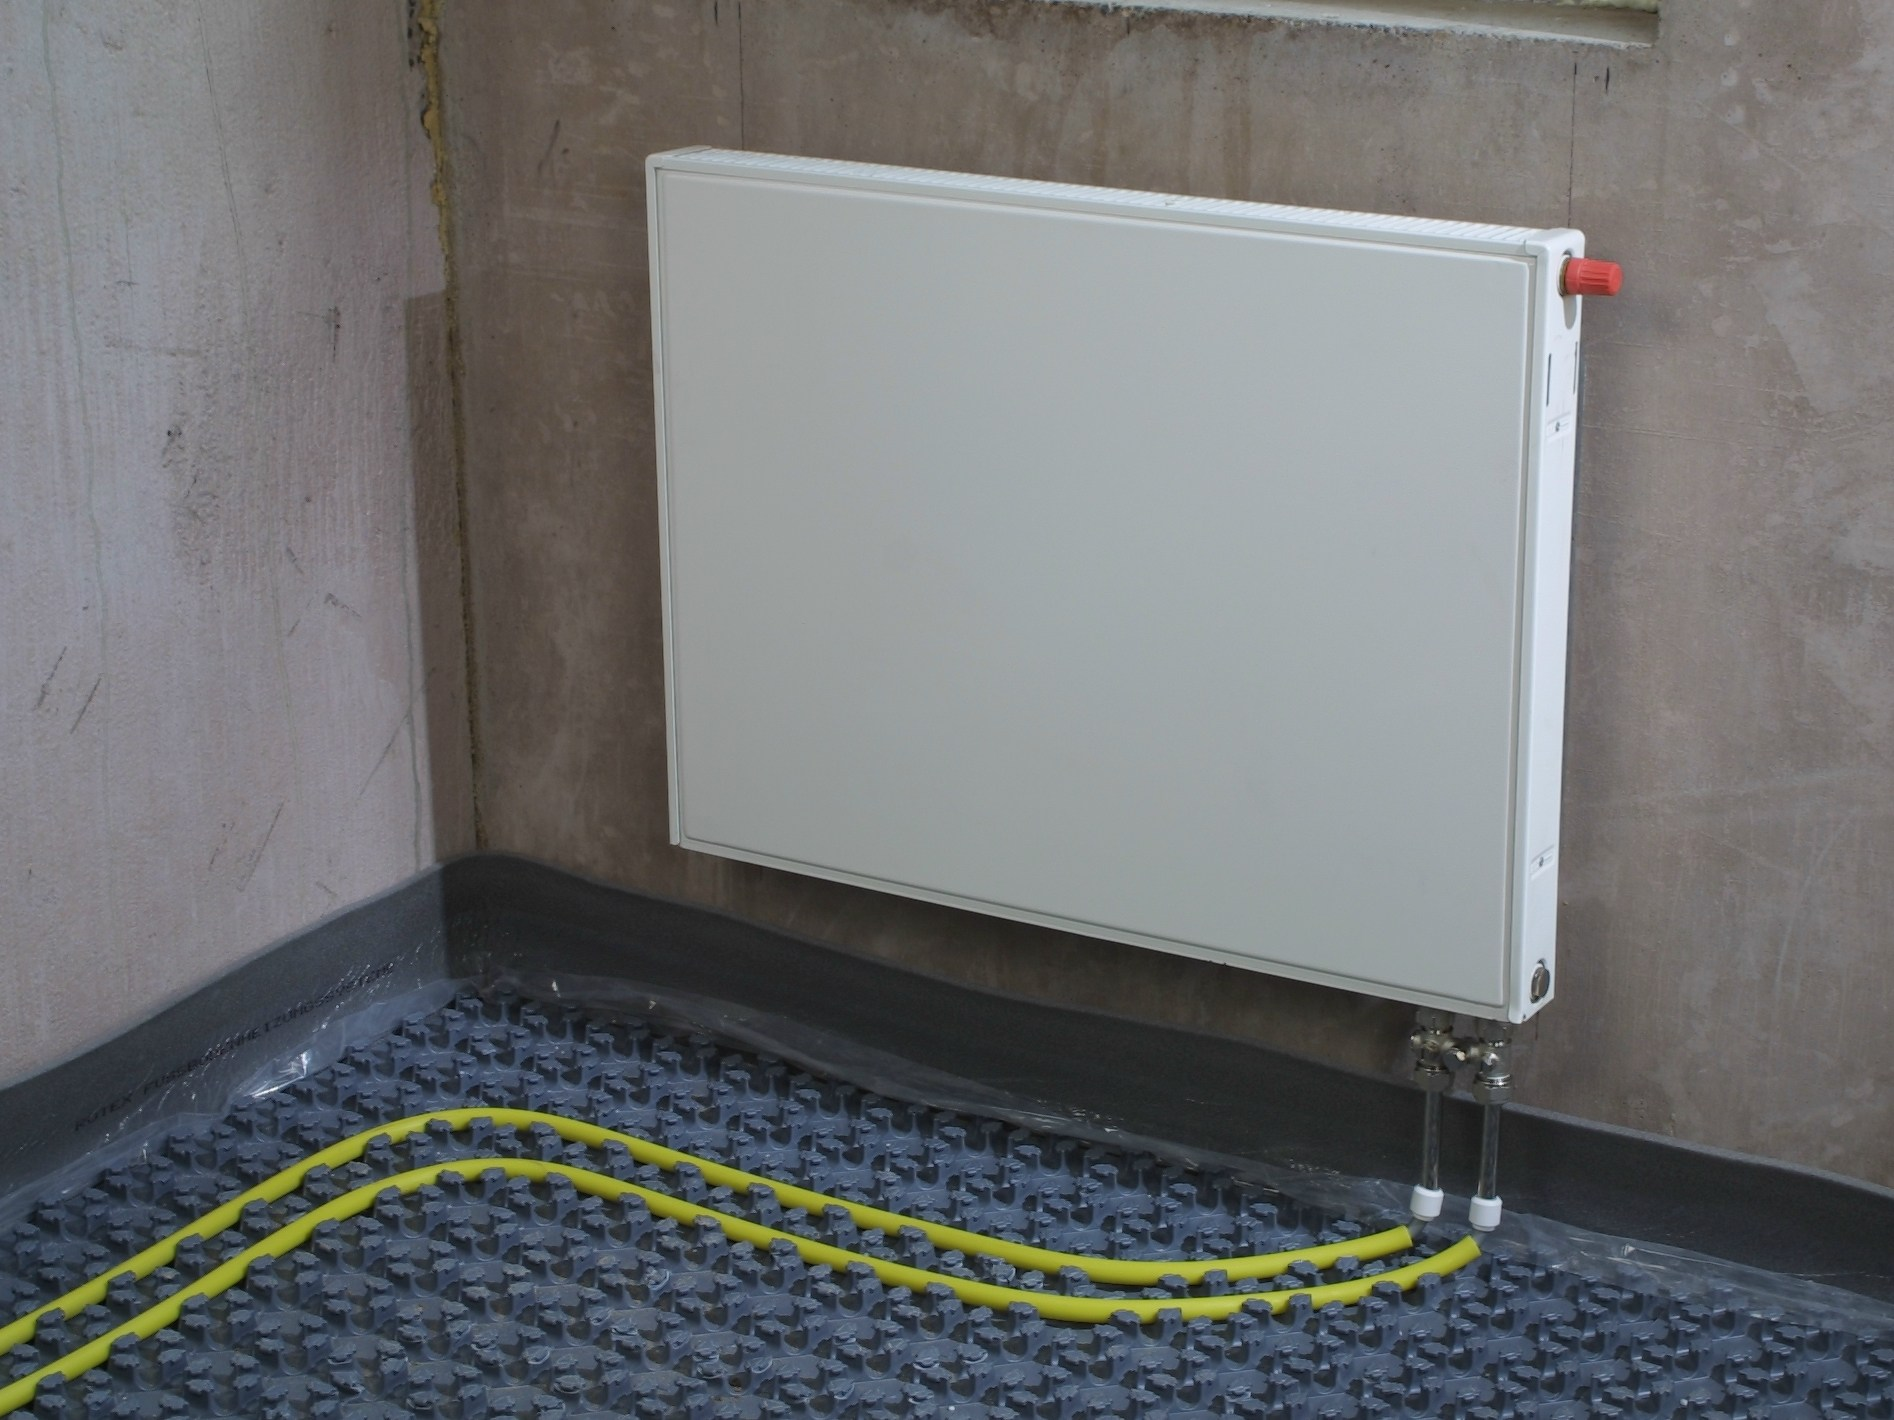 Radiant floor panel system 70 by daikin air conditioning for Radiant floors